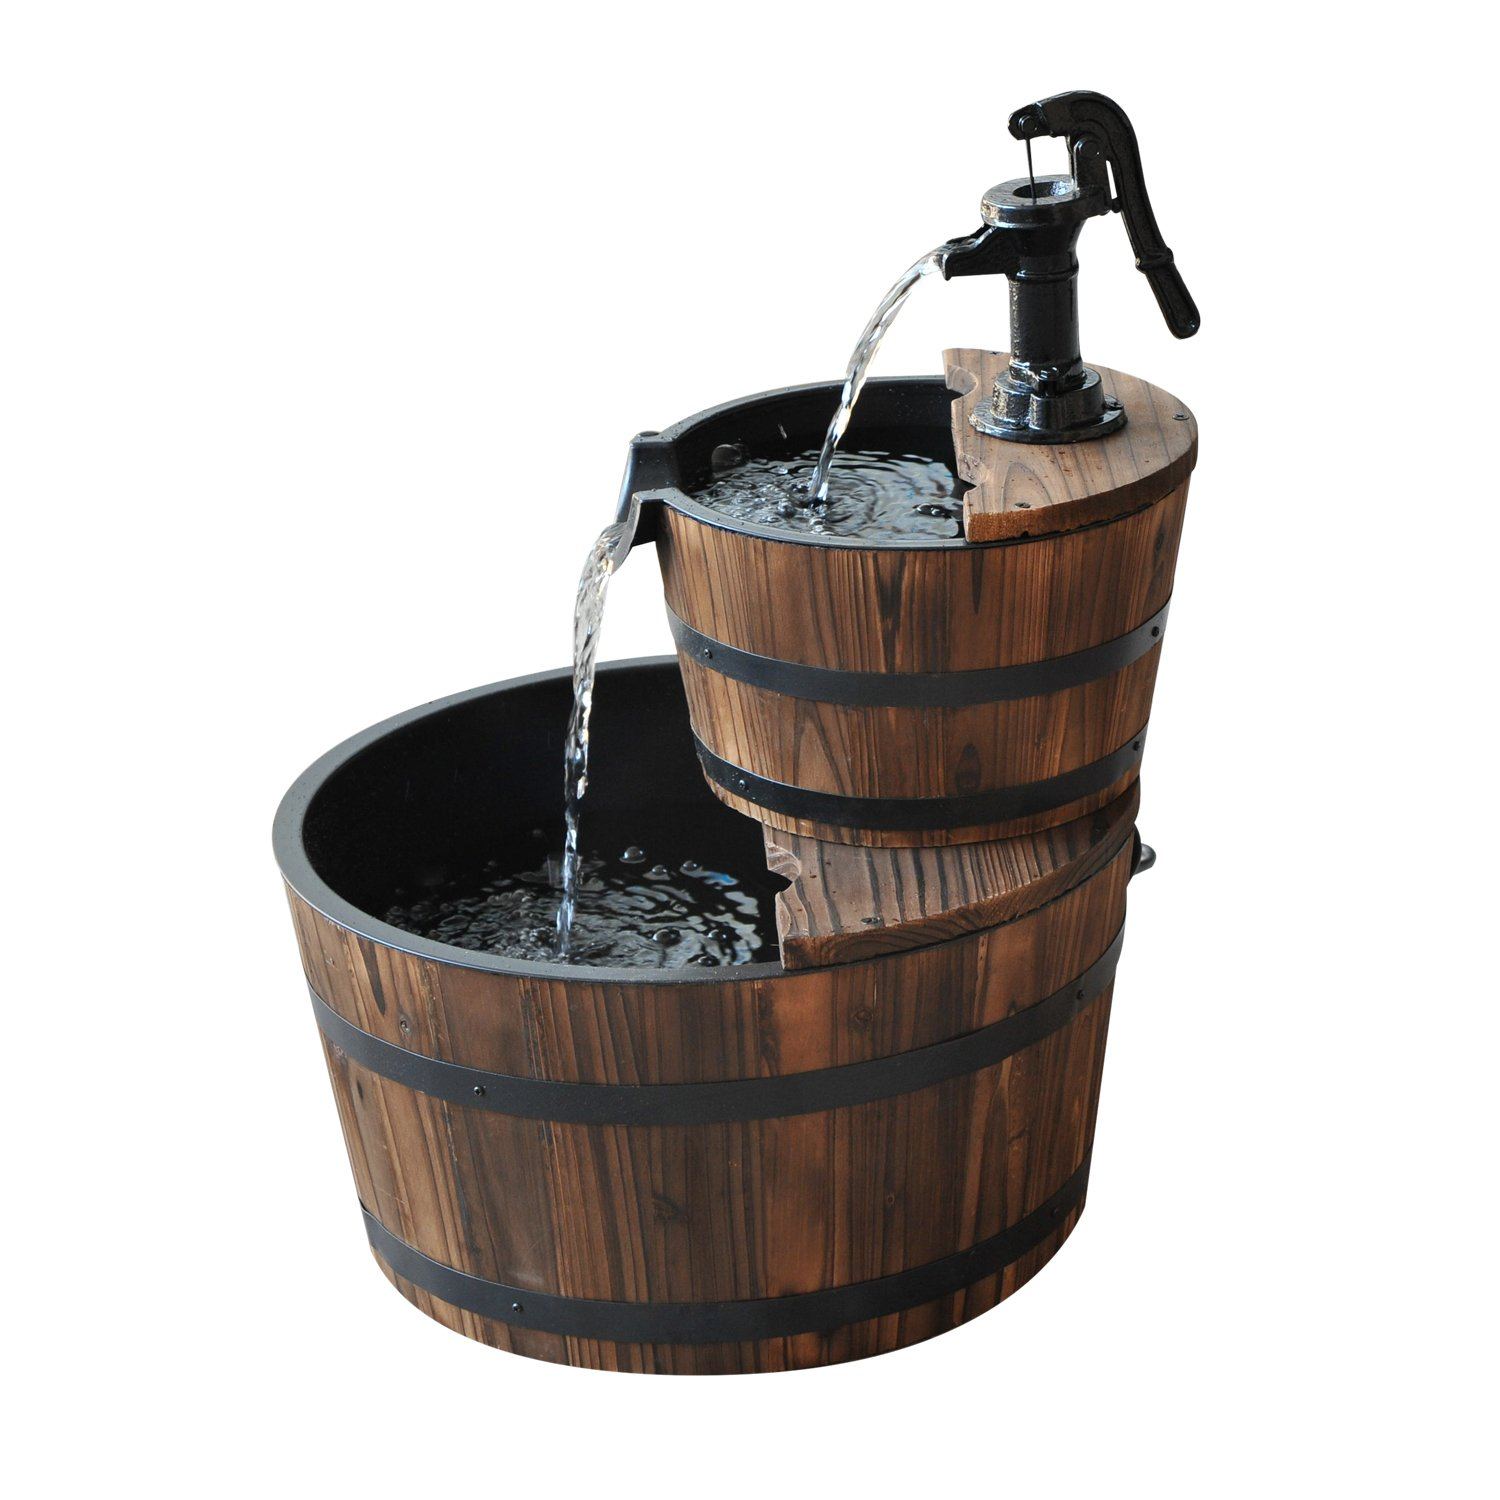 Outsunny Accent Two-Tier Rustic Wooden Barrel Fountain